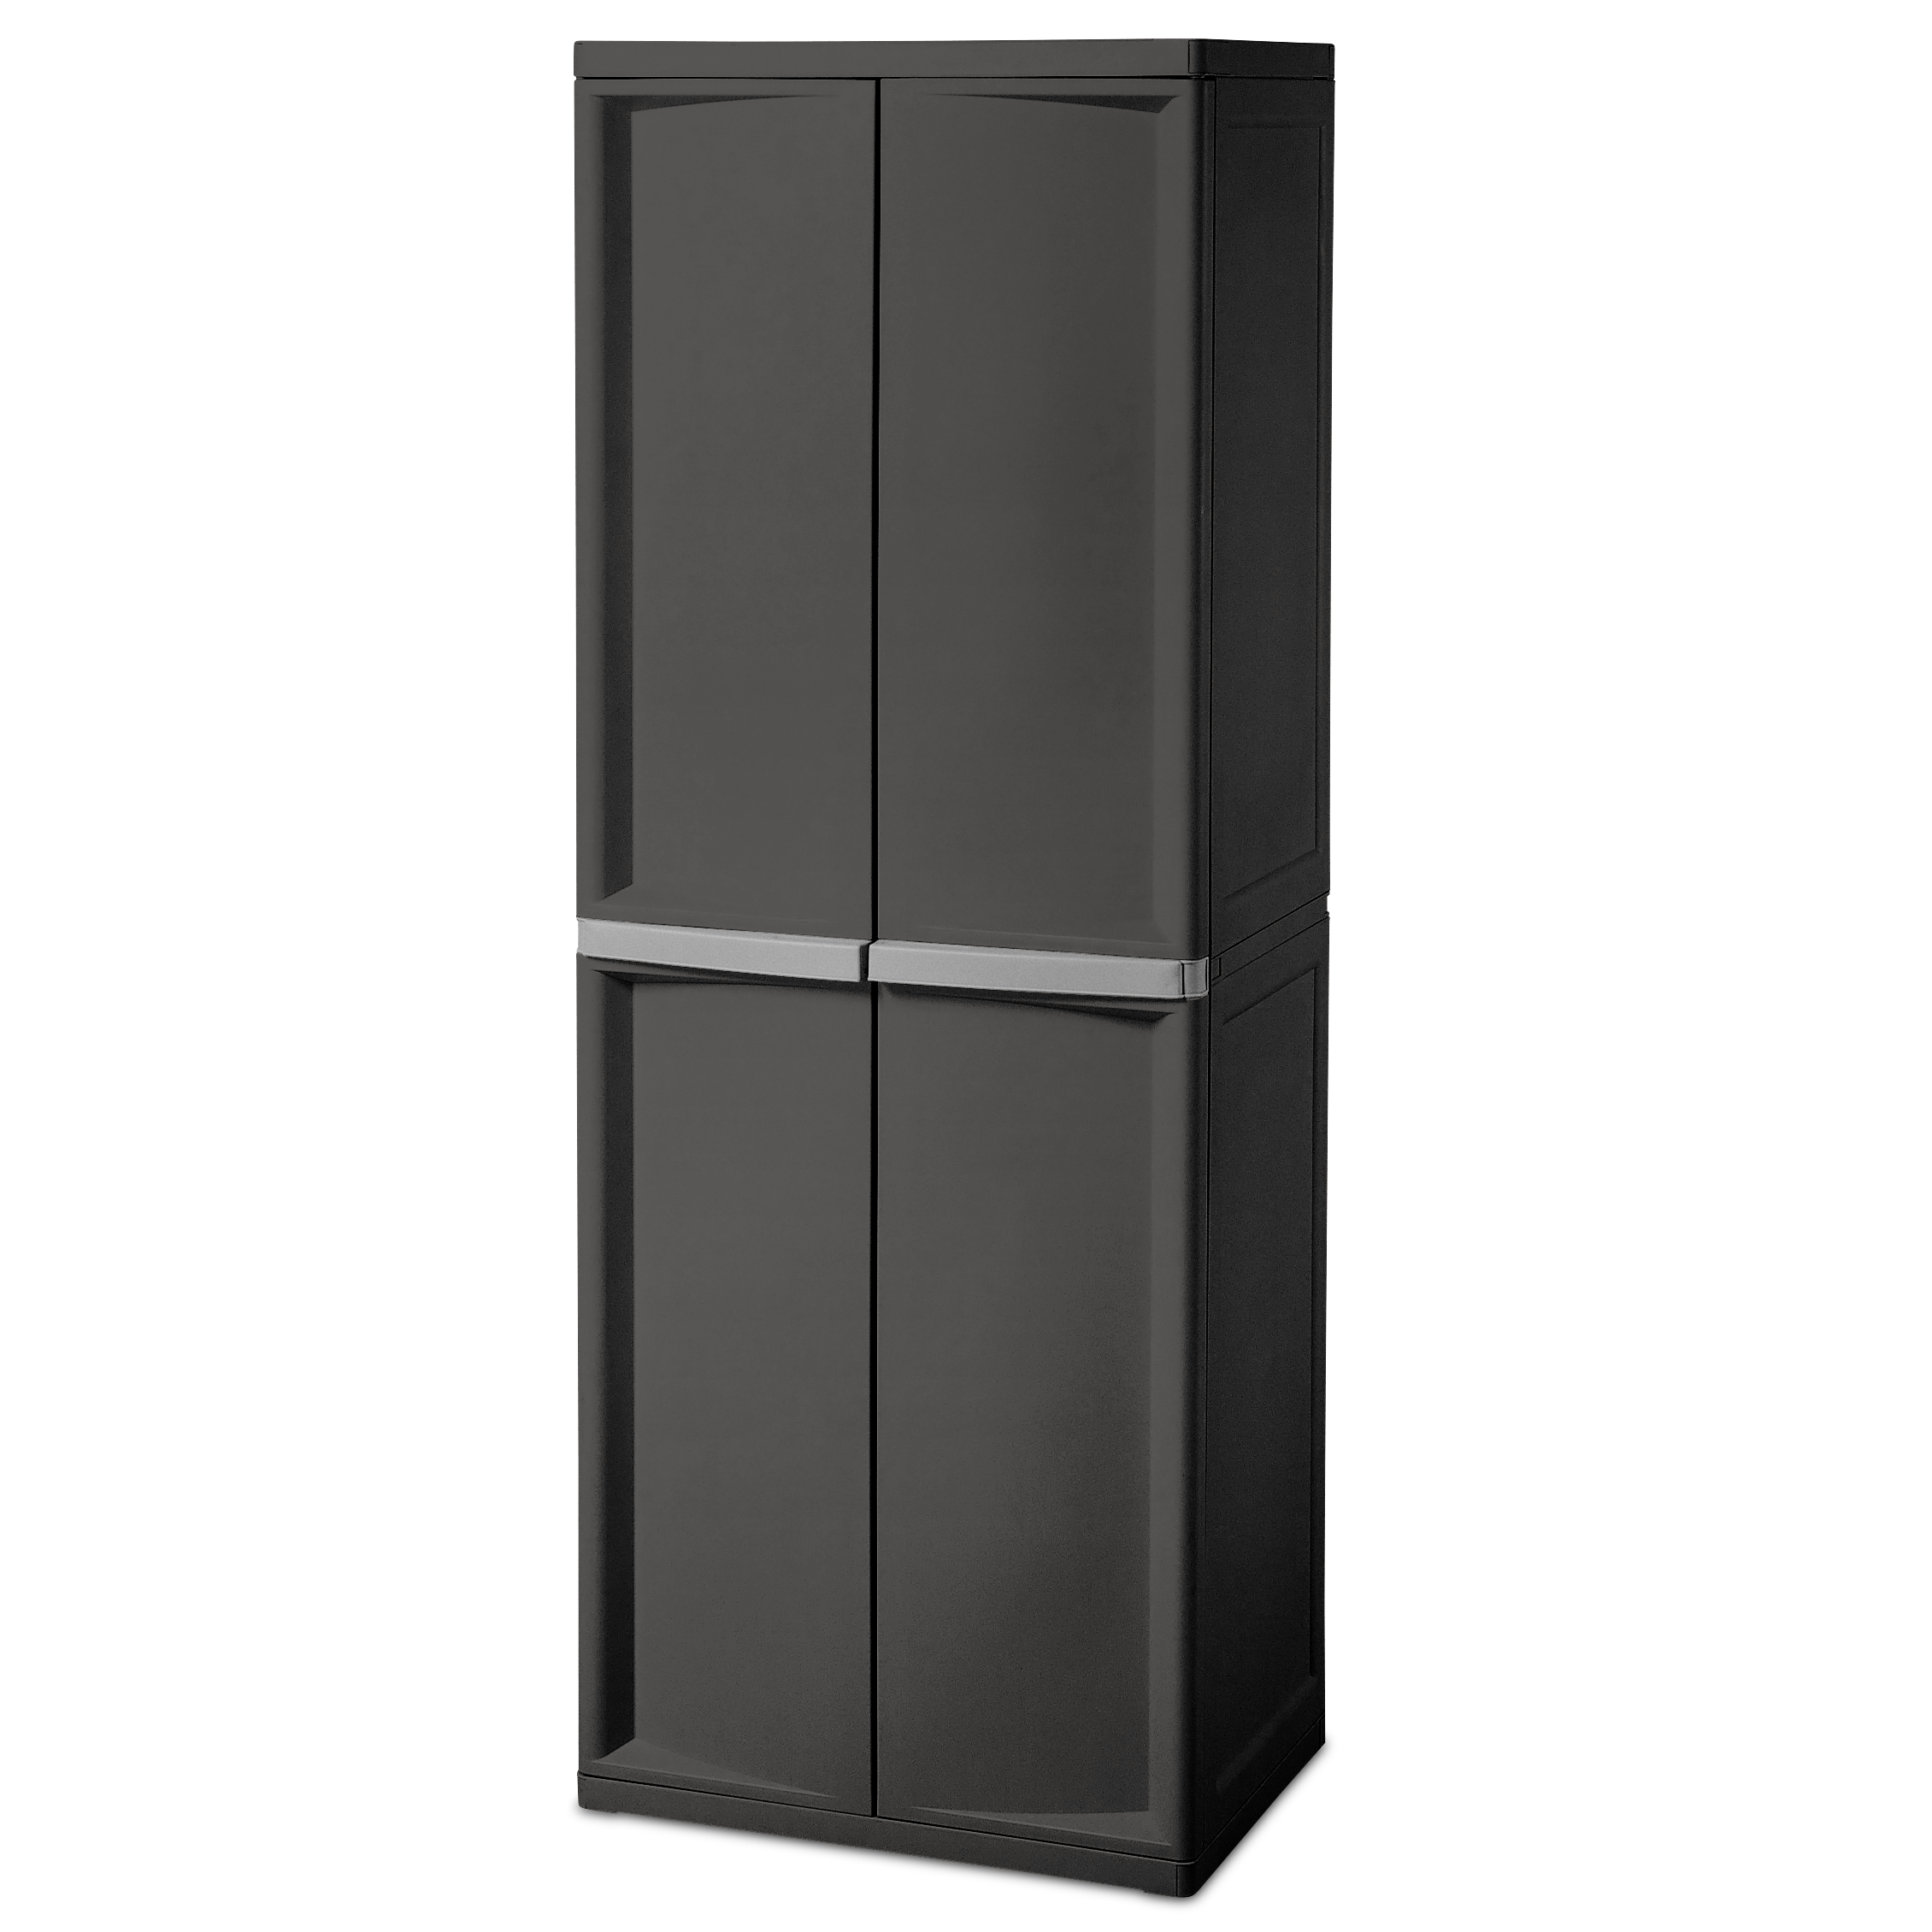 pack with handles platinum amazon utility com dp cabinet sterilite black kitchen gray shelf w putty flat home